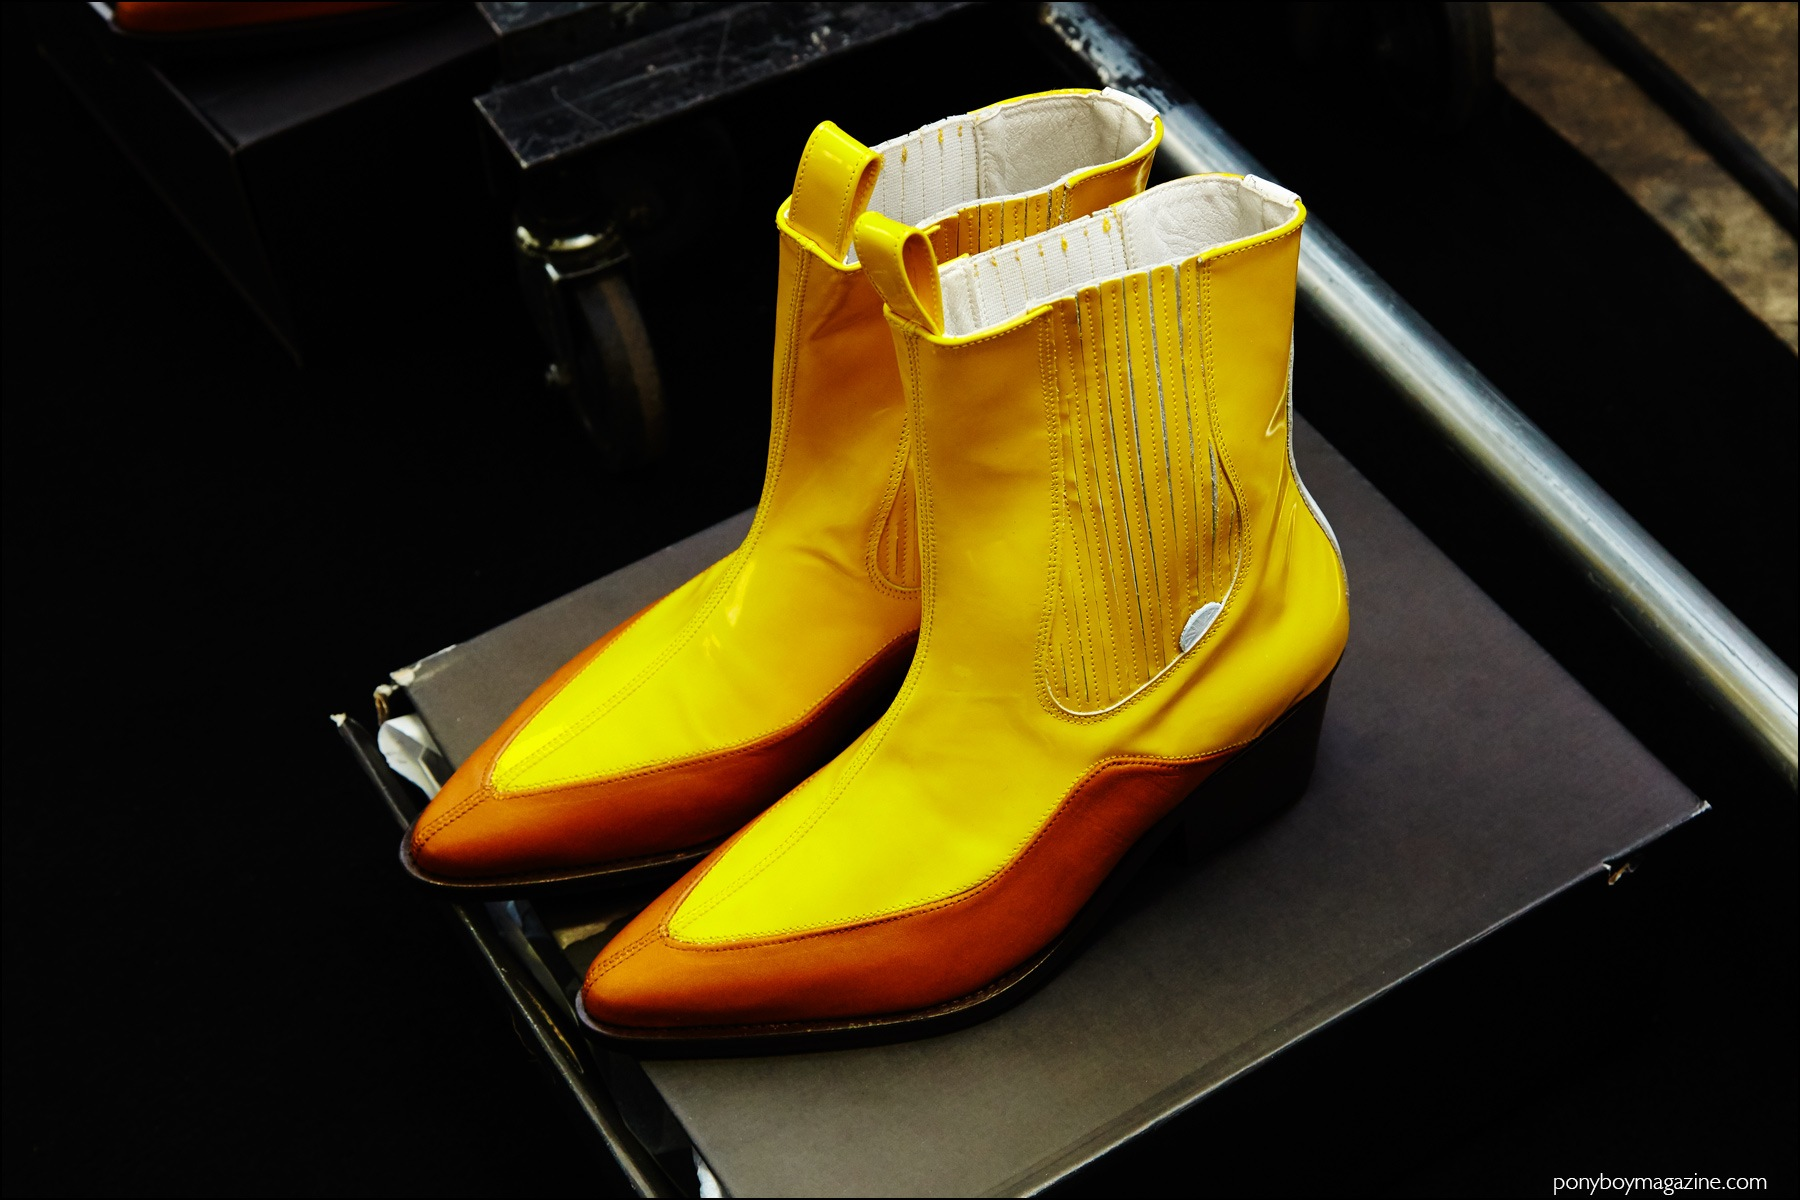 A pair of yellow boots, photographed backstage at the Devon Halfnight Leflufy F/W16 menswear show. Photography by Alexander Thompson for Ponyboy magazine NY.